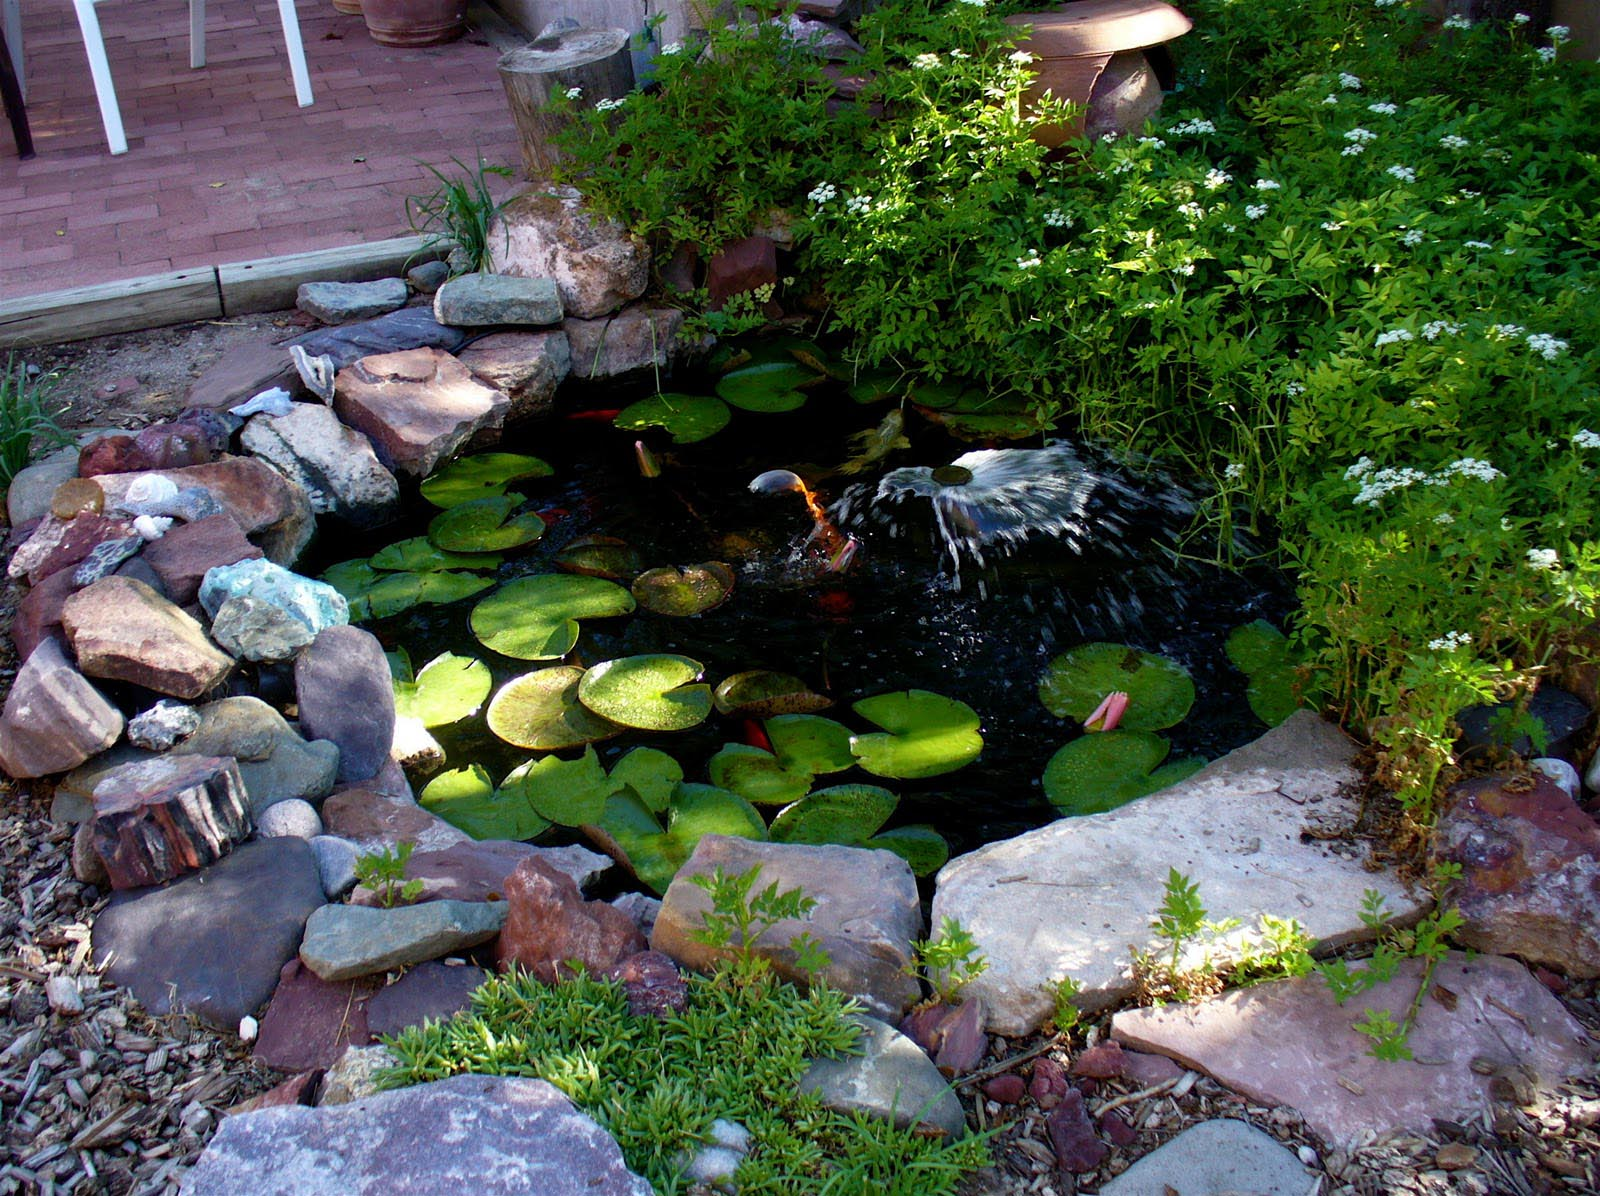 Garden fish pond ideas backyard design ideas for Garden fish pond ideas